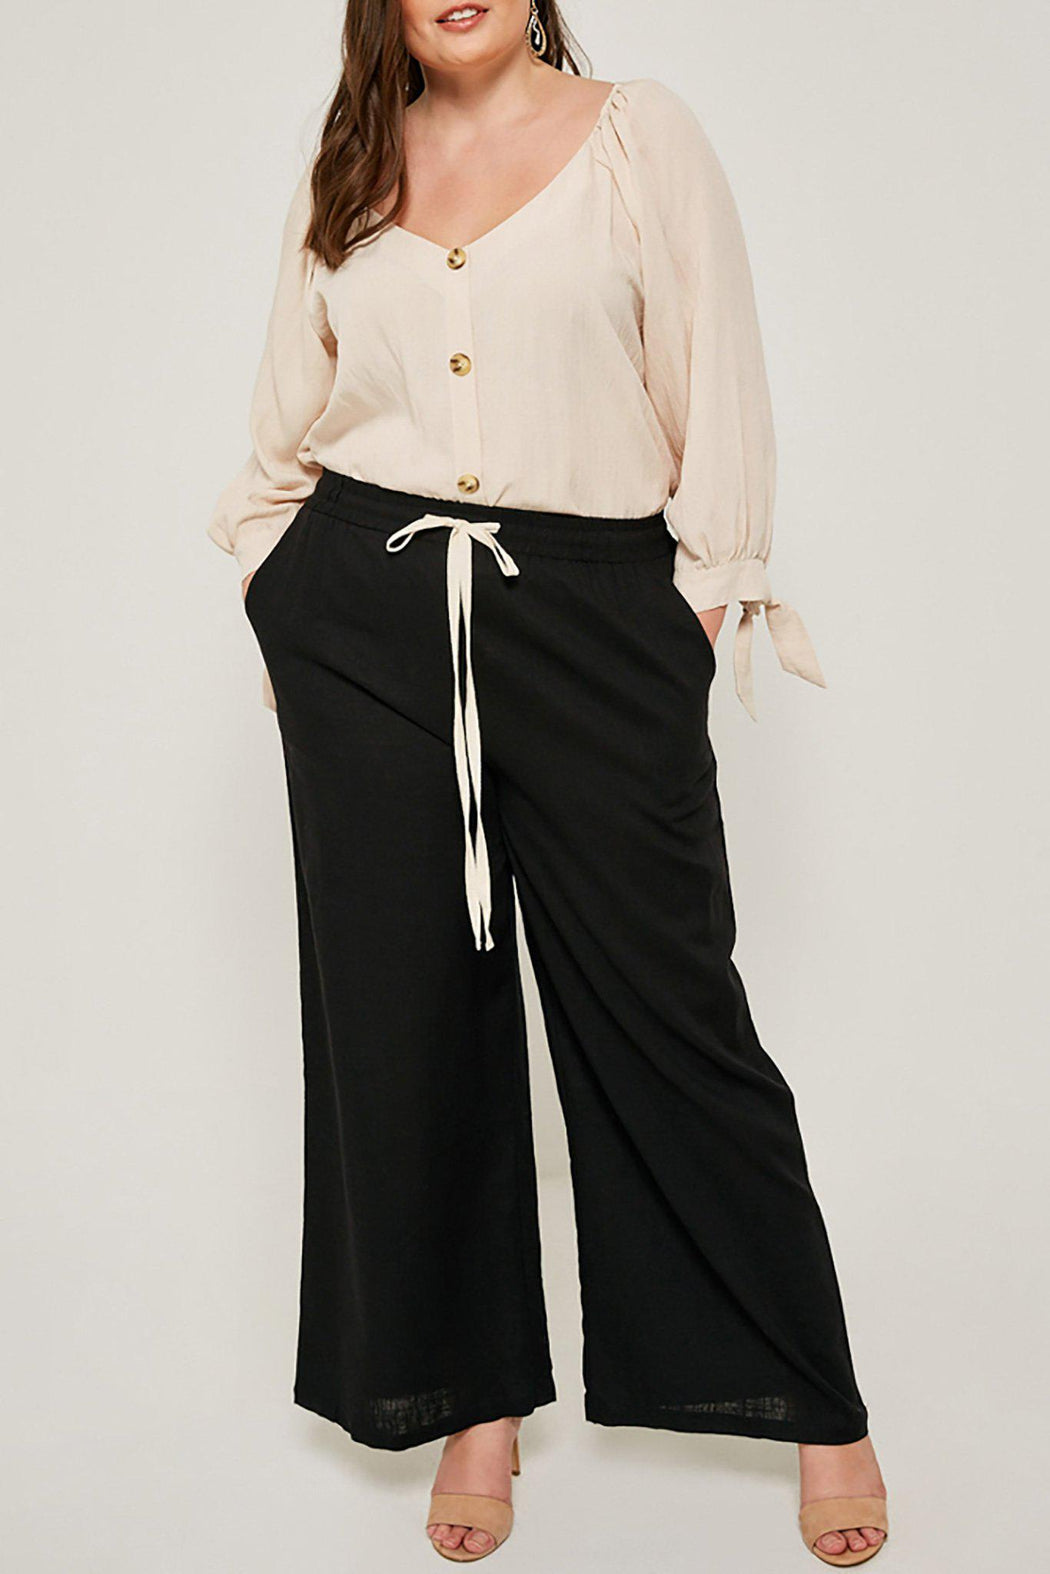 Plus-size wide leg black Madison pant full outfit view on model